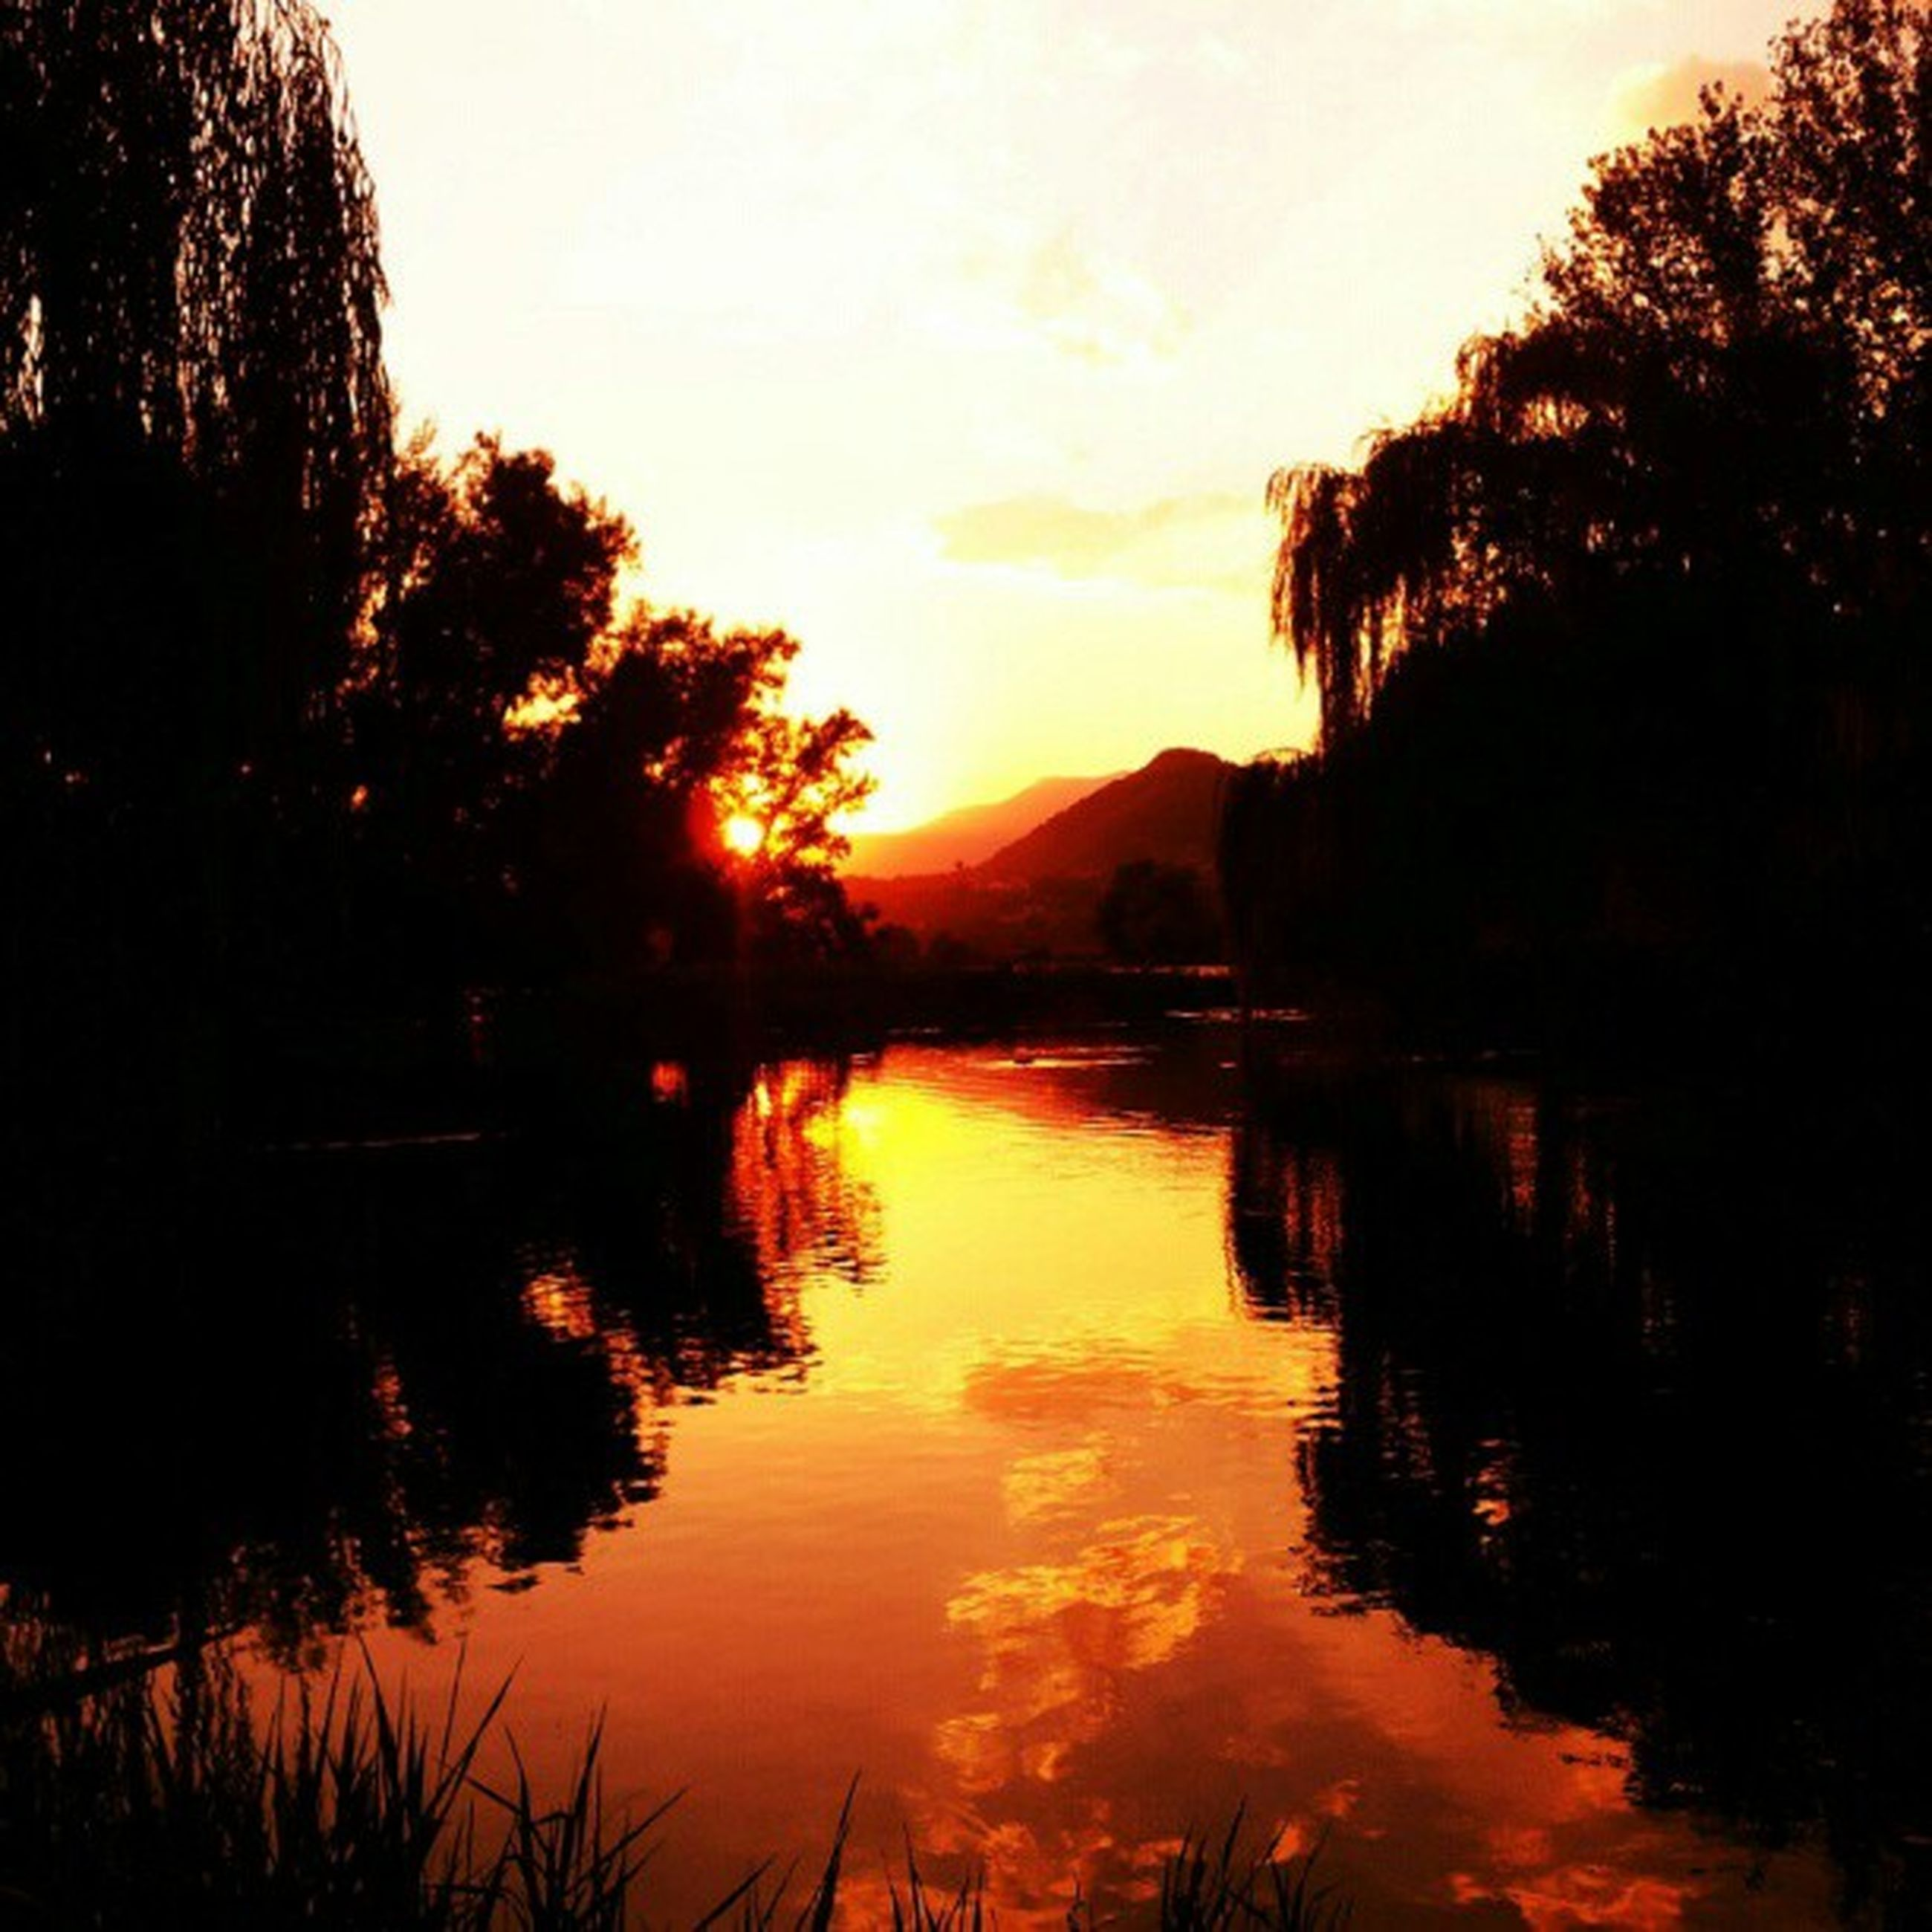 water, sunset, reflection, tranquil scene, tranquility, scenics, lake, beauty in nature, tree, silhouette, sky, nature, idyllic, mountain, river, waterfront, calm, orange color, non-urban scene, outdoors